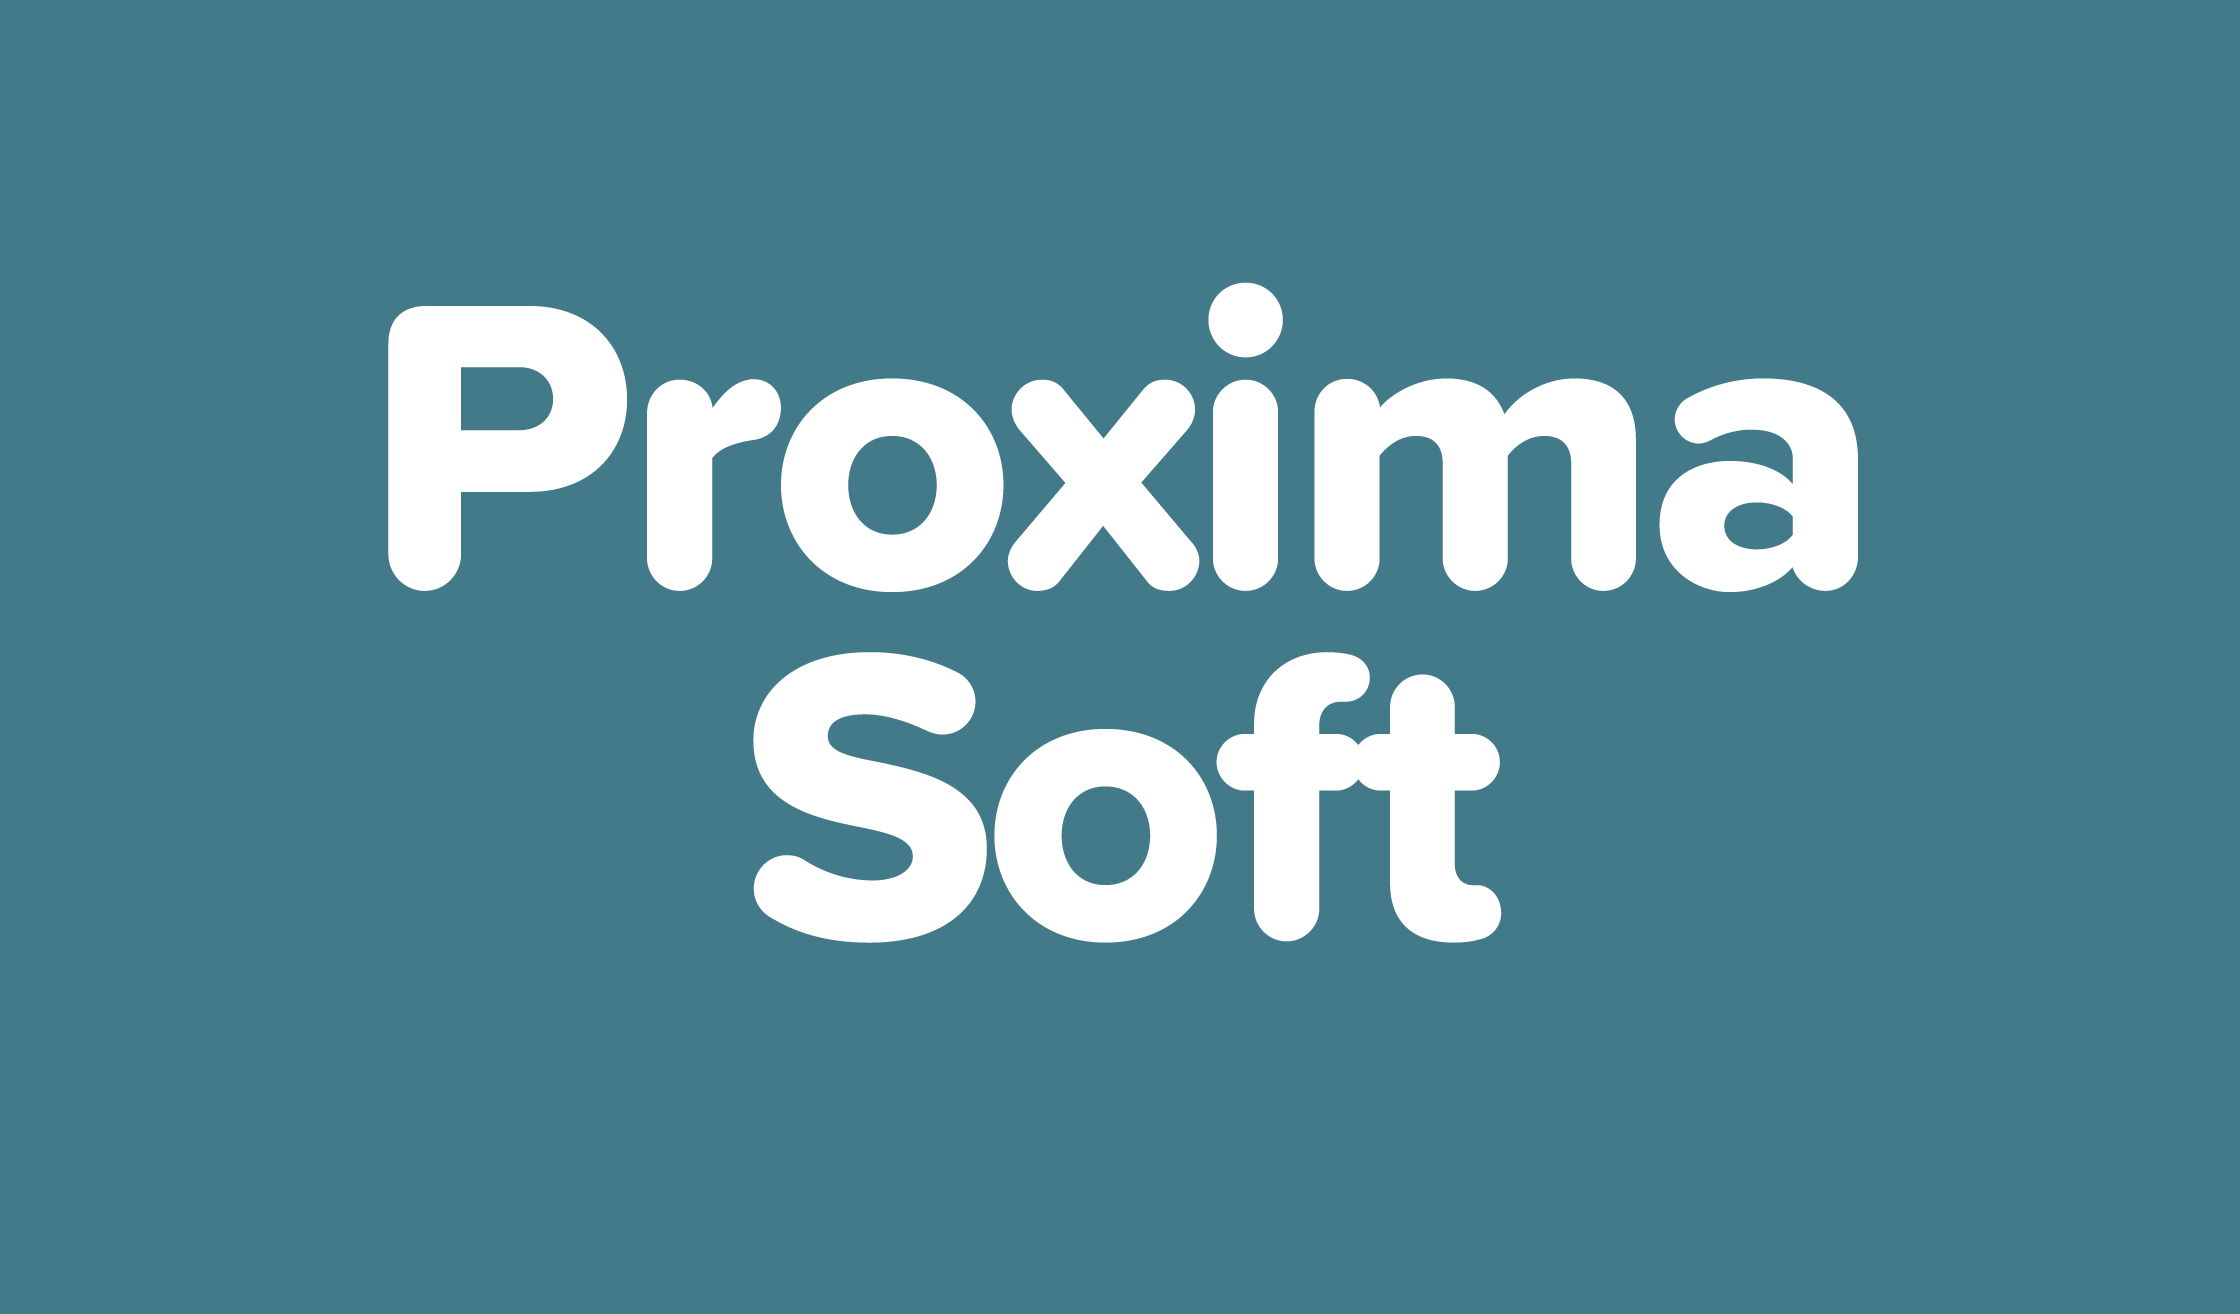 Proxima Soft Banner Name 2240